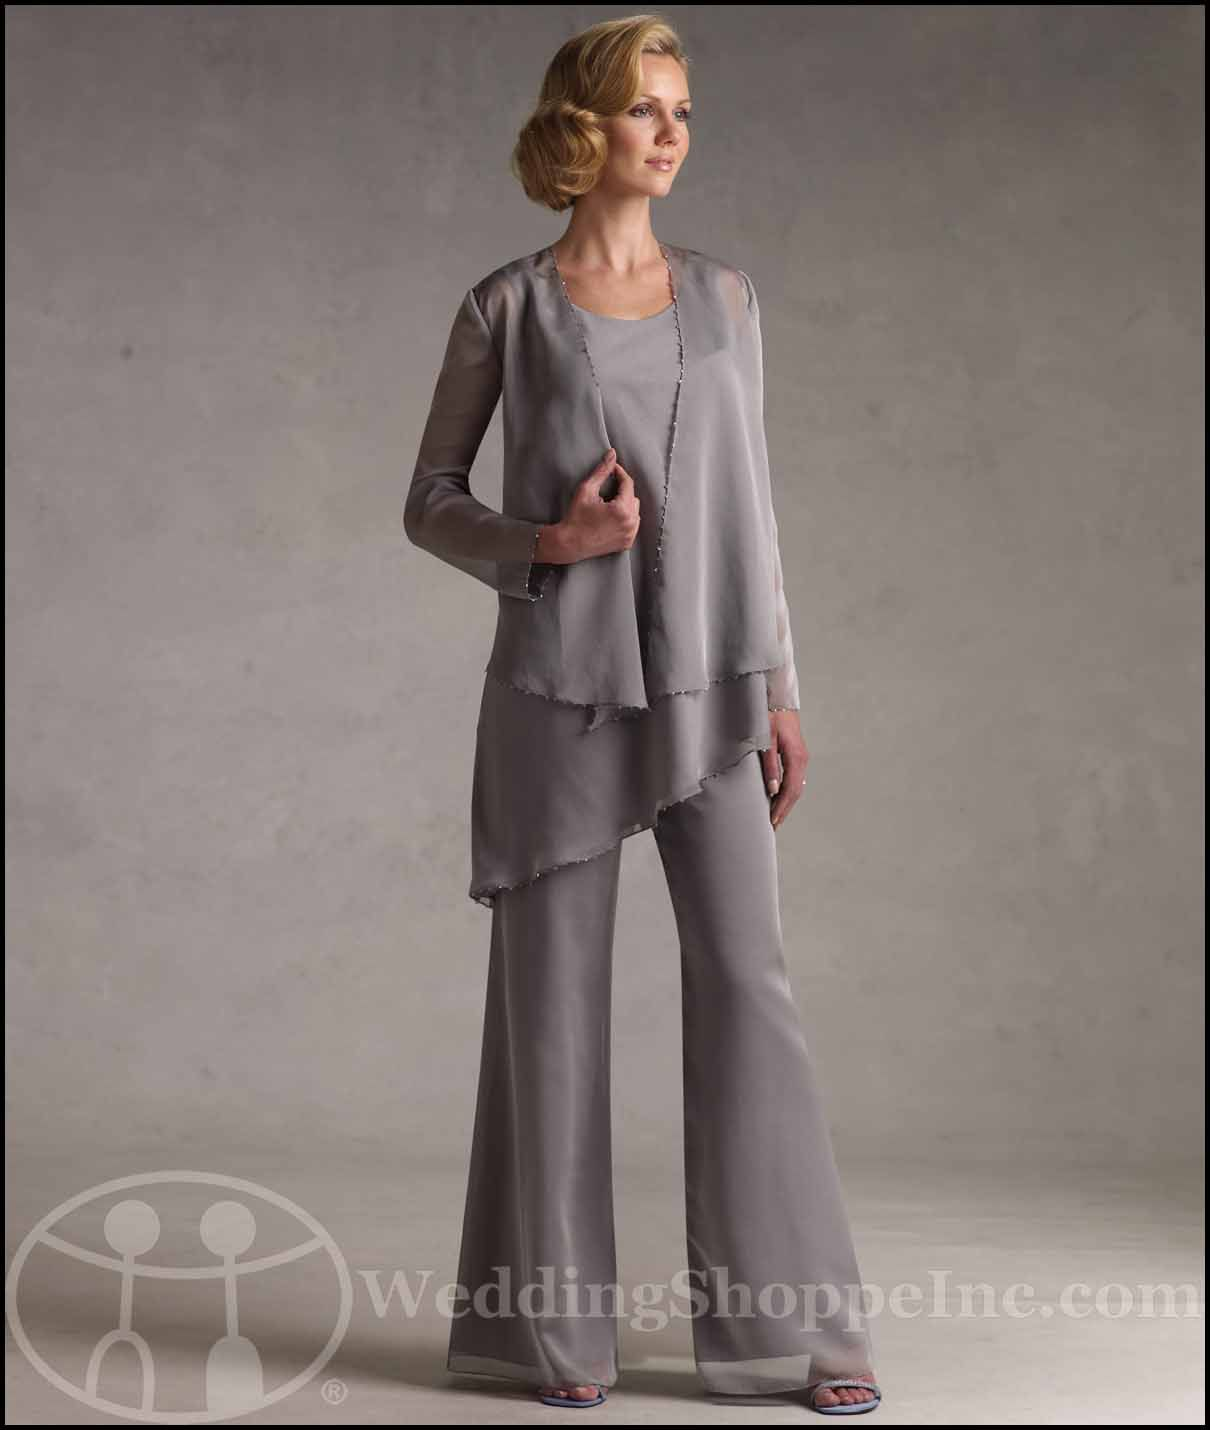 Wedding Pant Suits.Mother Of The Bride Pant Suits And Dresses You Ll Love